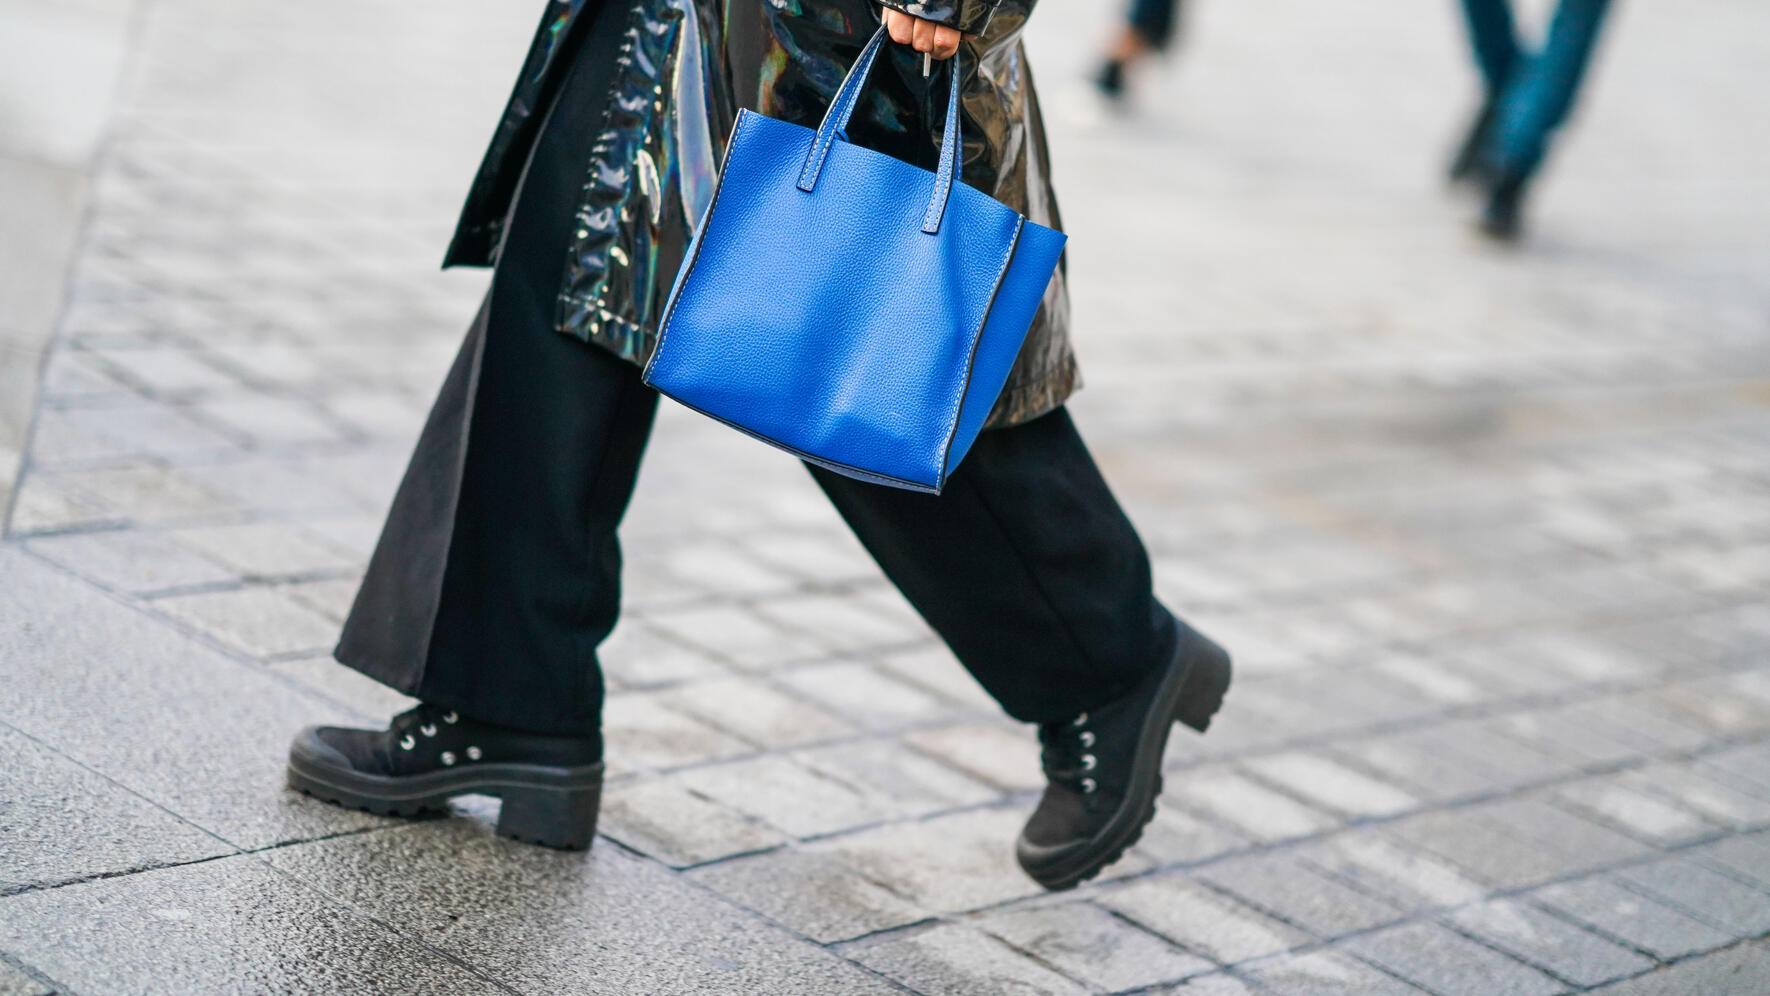 PARIS, FRANCE - OCTOBER 01: A guest wears a black pvc trench rain coat, a blue bag, flare pants, black shoes, outside Louis Vuitton, during Paris Fashion Week - Womenswear Spring Summer 2020, on October 01, 2019 in Paris, France. (Photo by Edward Berthelot/Getty Images)